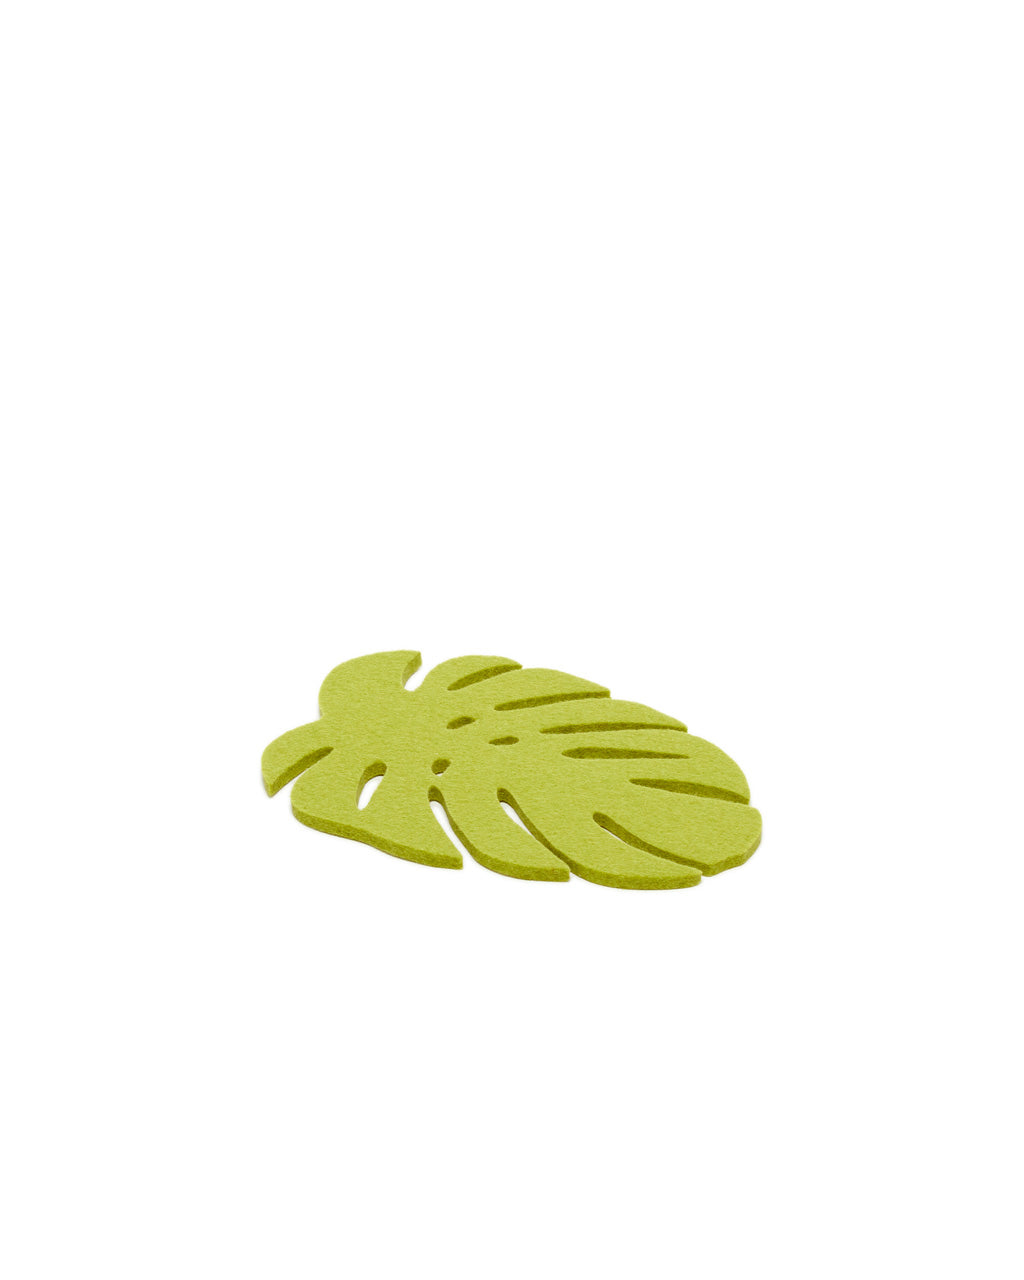 Small monstera trivet in pistachio green.